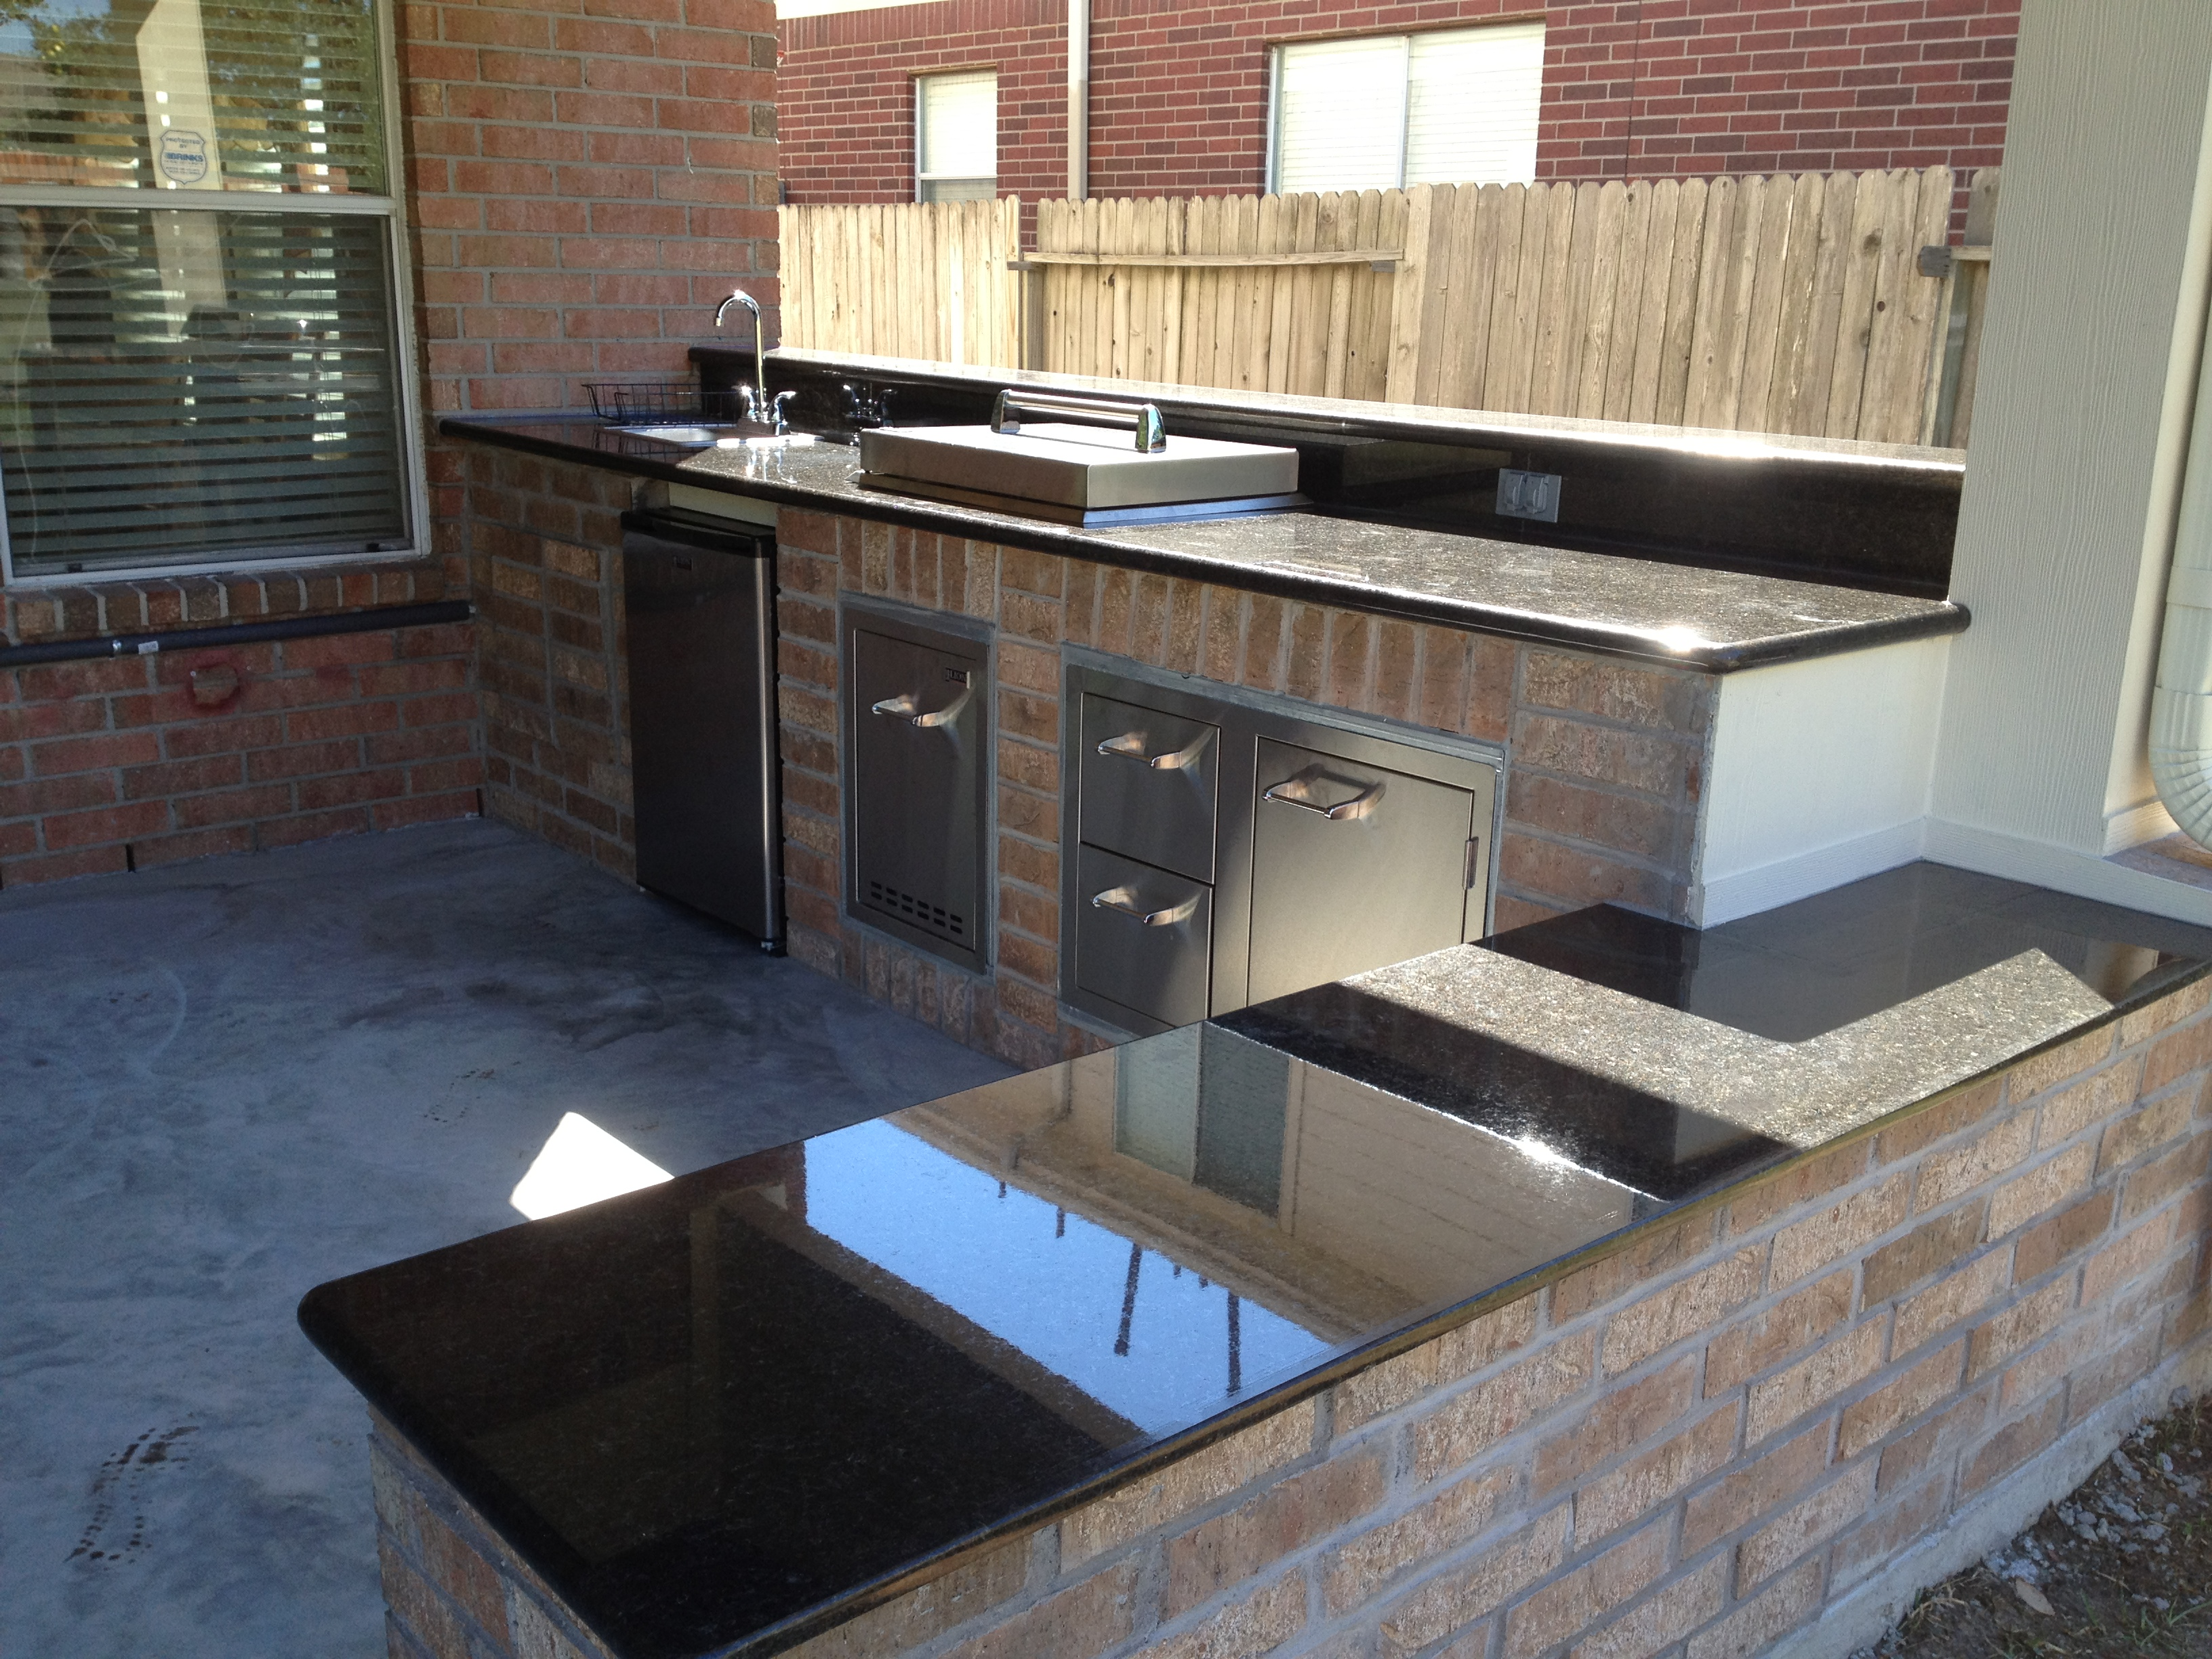 To Build Outdoor Kitchen How To Build An Outdoor Kitchen In Houston Tx